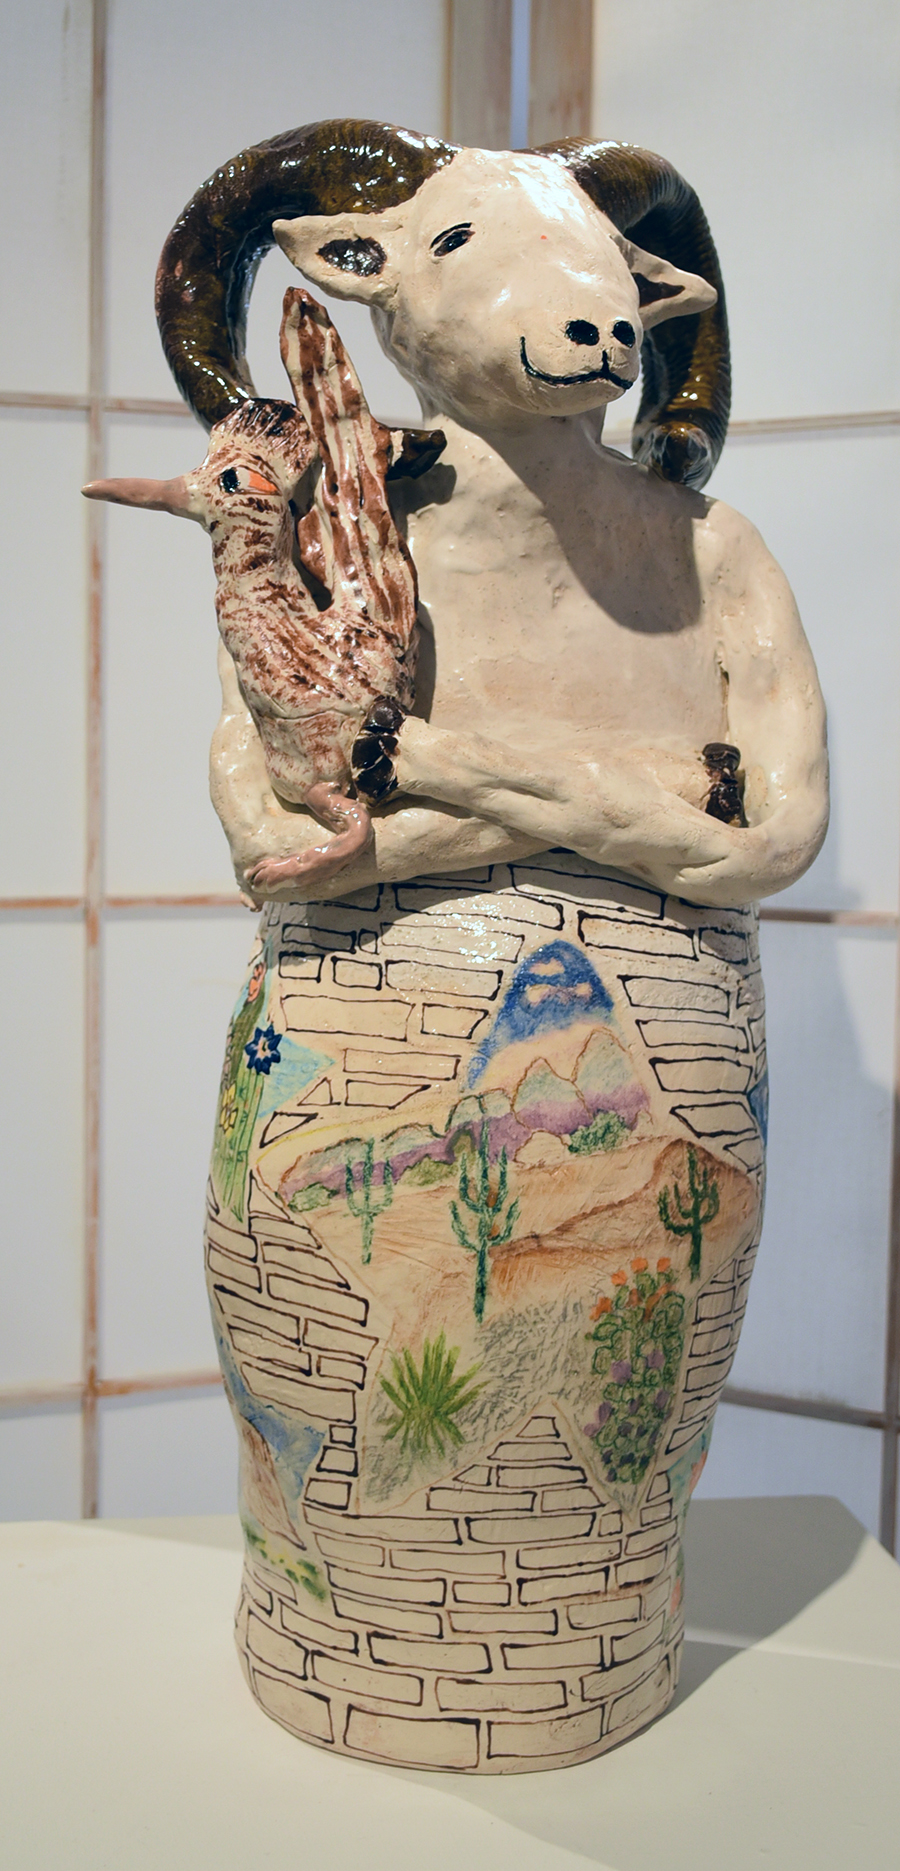 Kate Missett Big Horned Sheep and Road Runner Versus the Wall 2017-18 White Stoneware 24 x 8 x 6 inches $850, low res.jpg